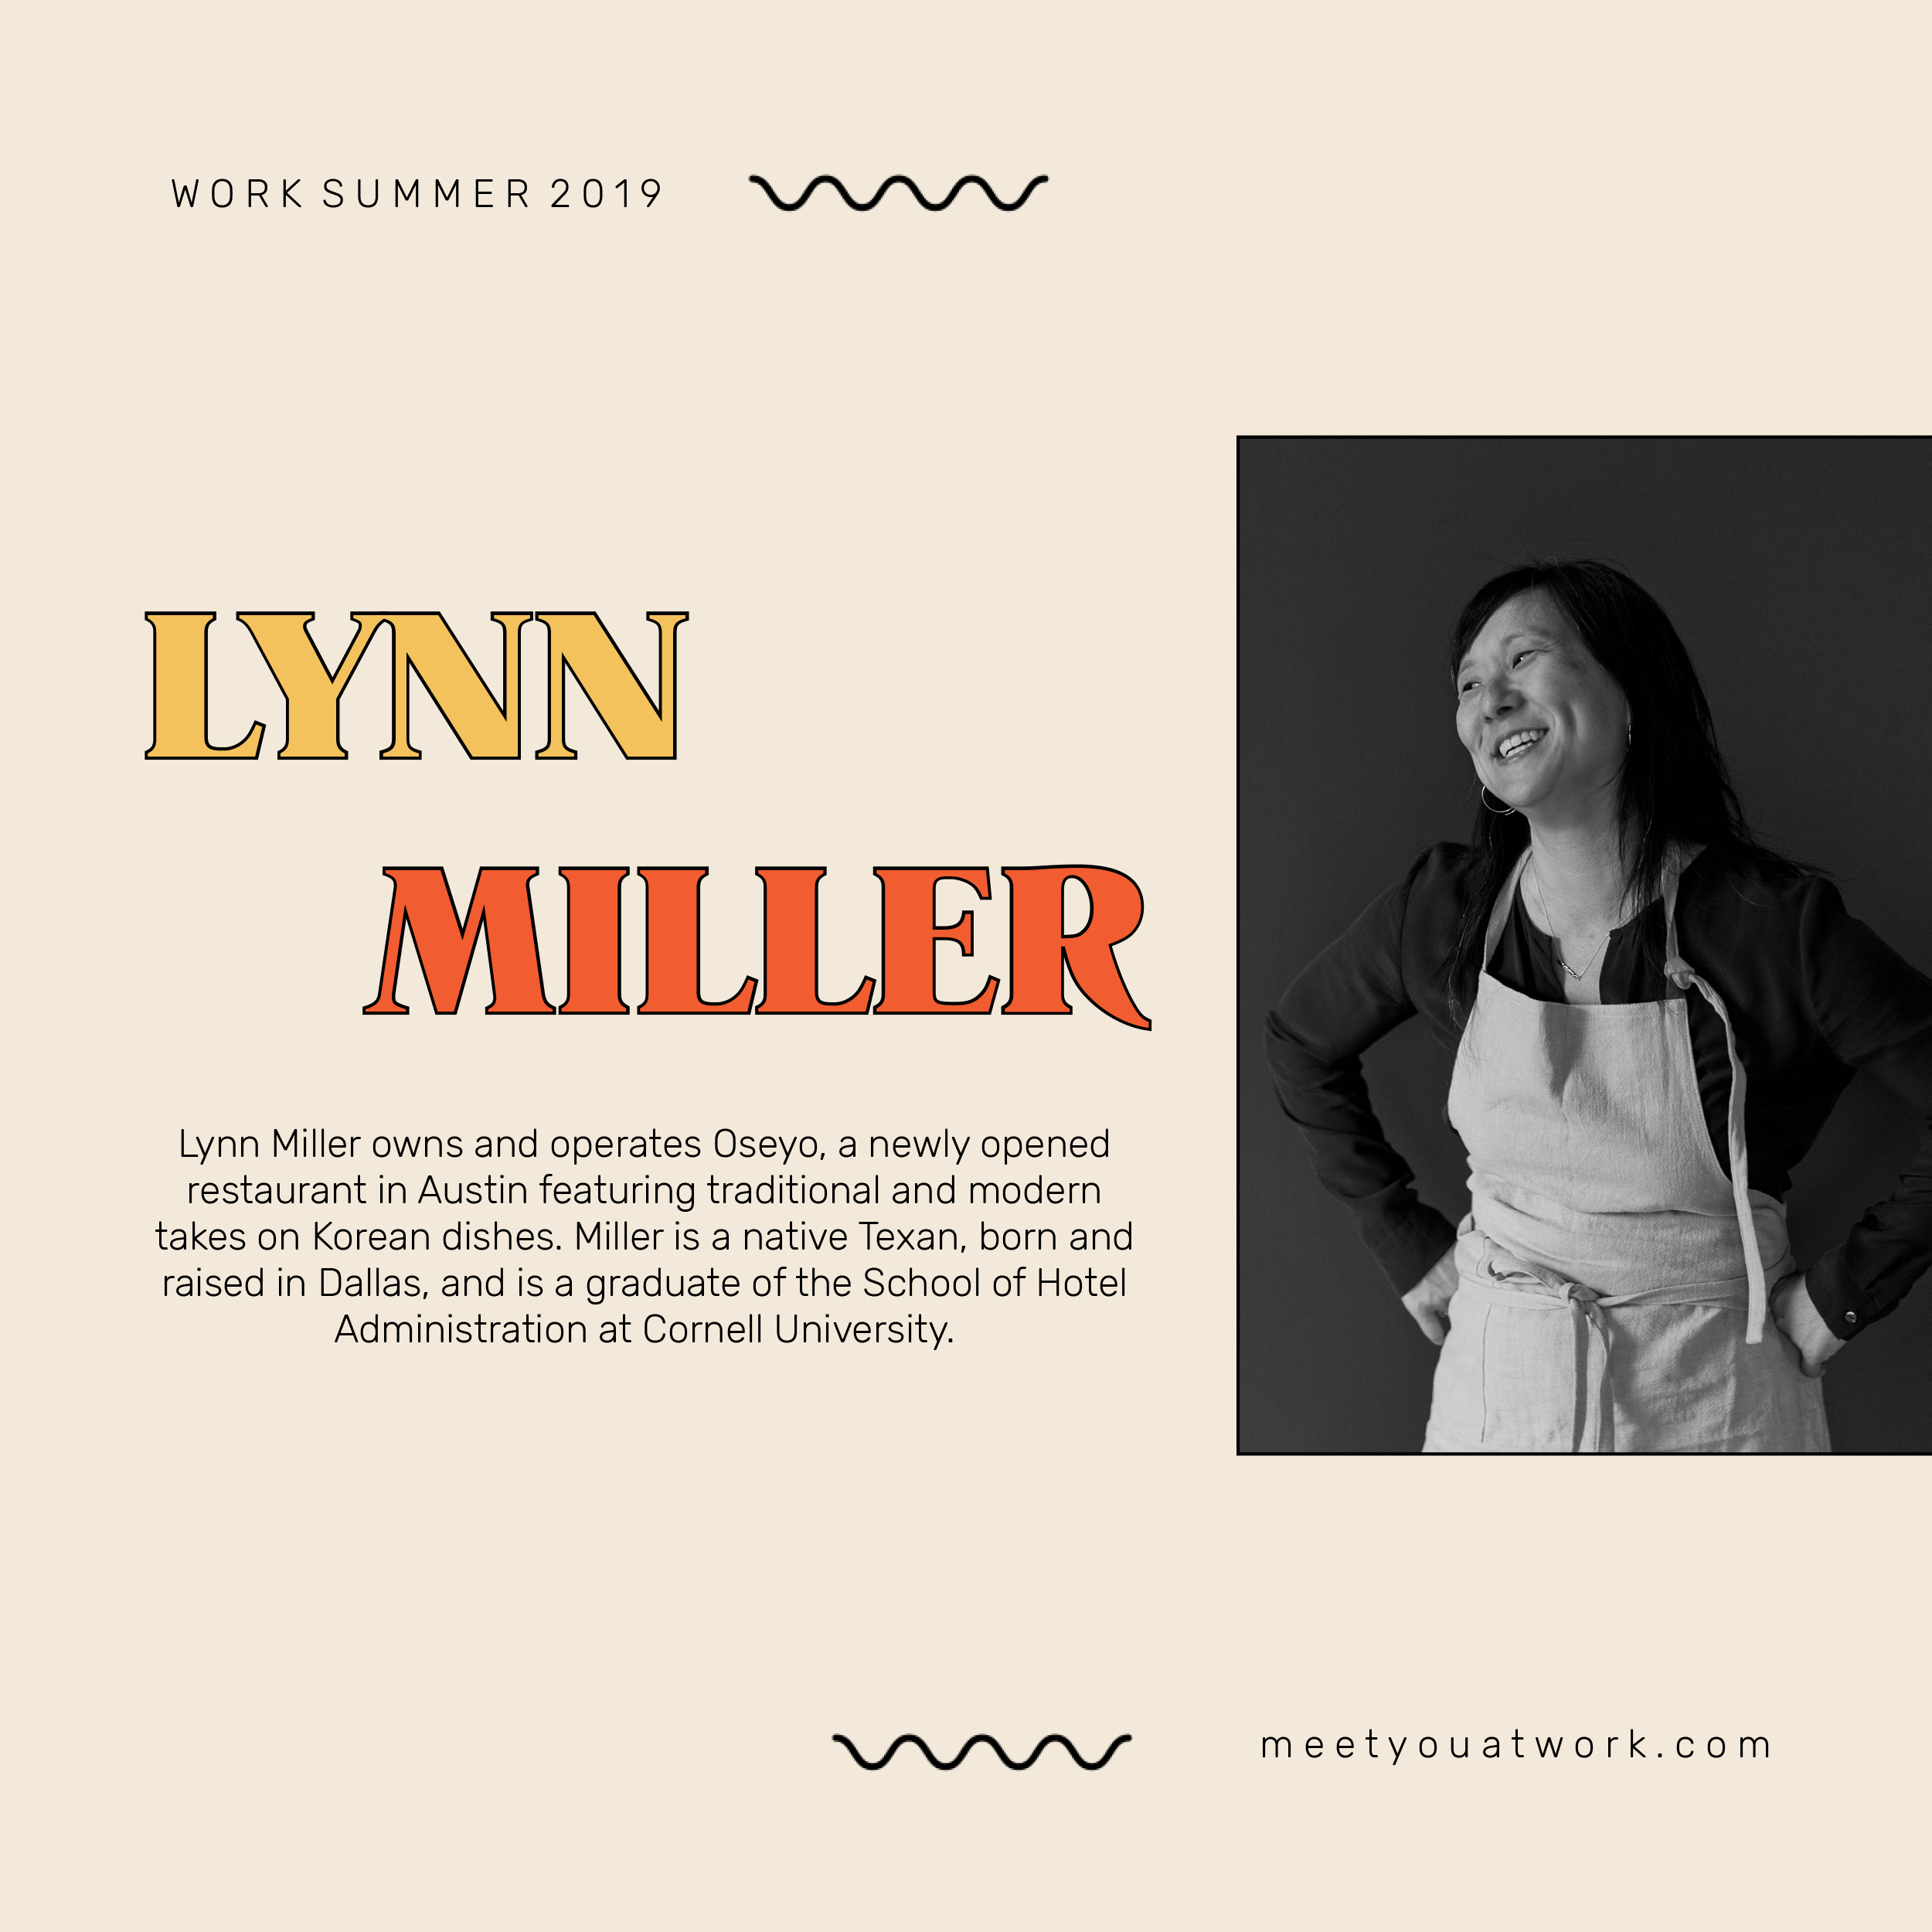 Lynn Miller owns and operates Oseyo, a newly opened restaurant in Austin featuring traditional and modern takes on Korean dishes. Miller is a native Texan, born and raised in Dallas, and is a graduate of the School of Hotel Administration at Cornell University.